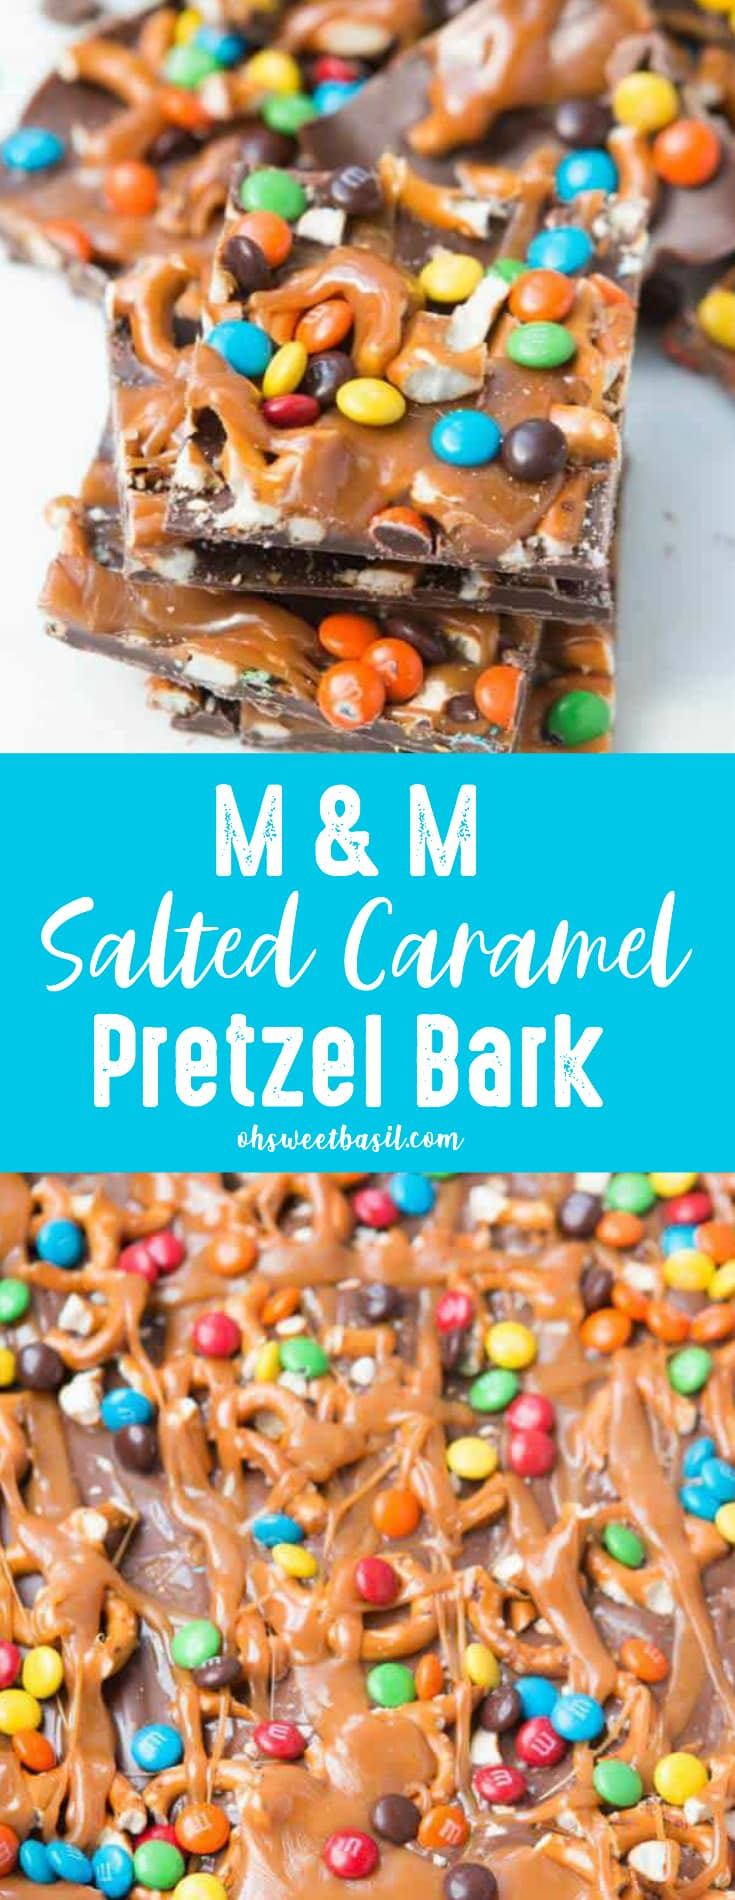 A batch of M&M Salted Carmel Pretzel Bark with M&M's, chocolate, and caramel drizzled on top.